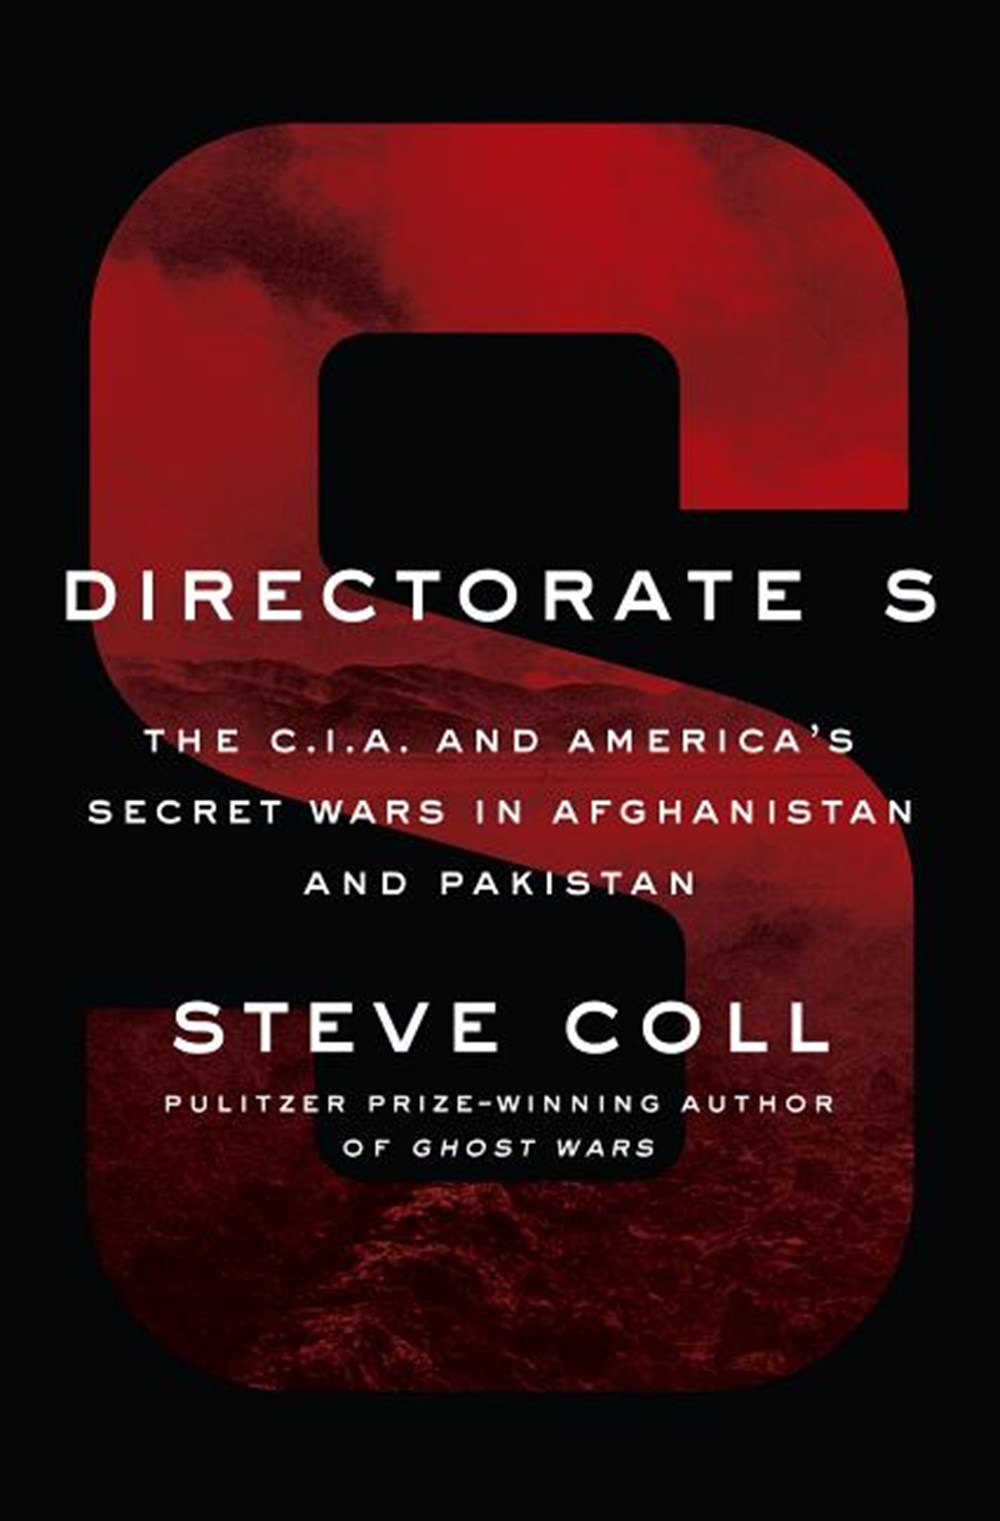 Directorate S The C.I.A. and America's Secret Wars in Afghanistan and Pakistan